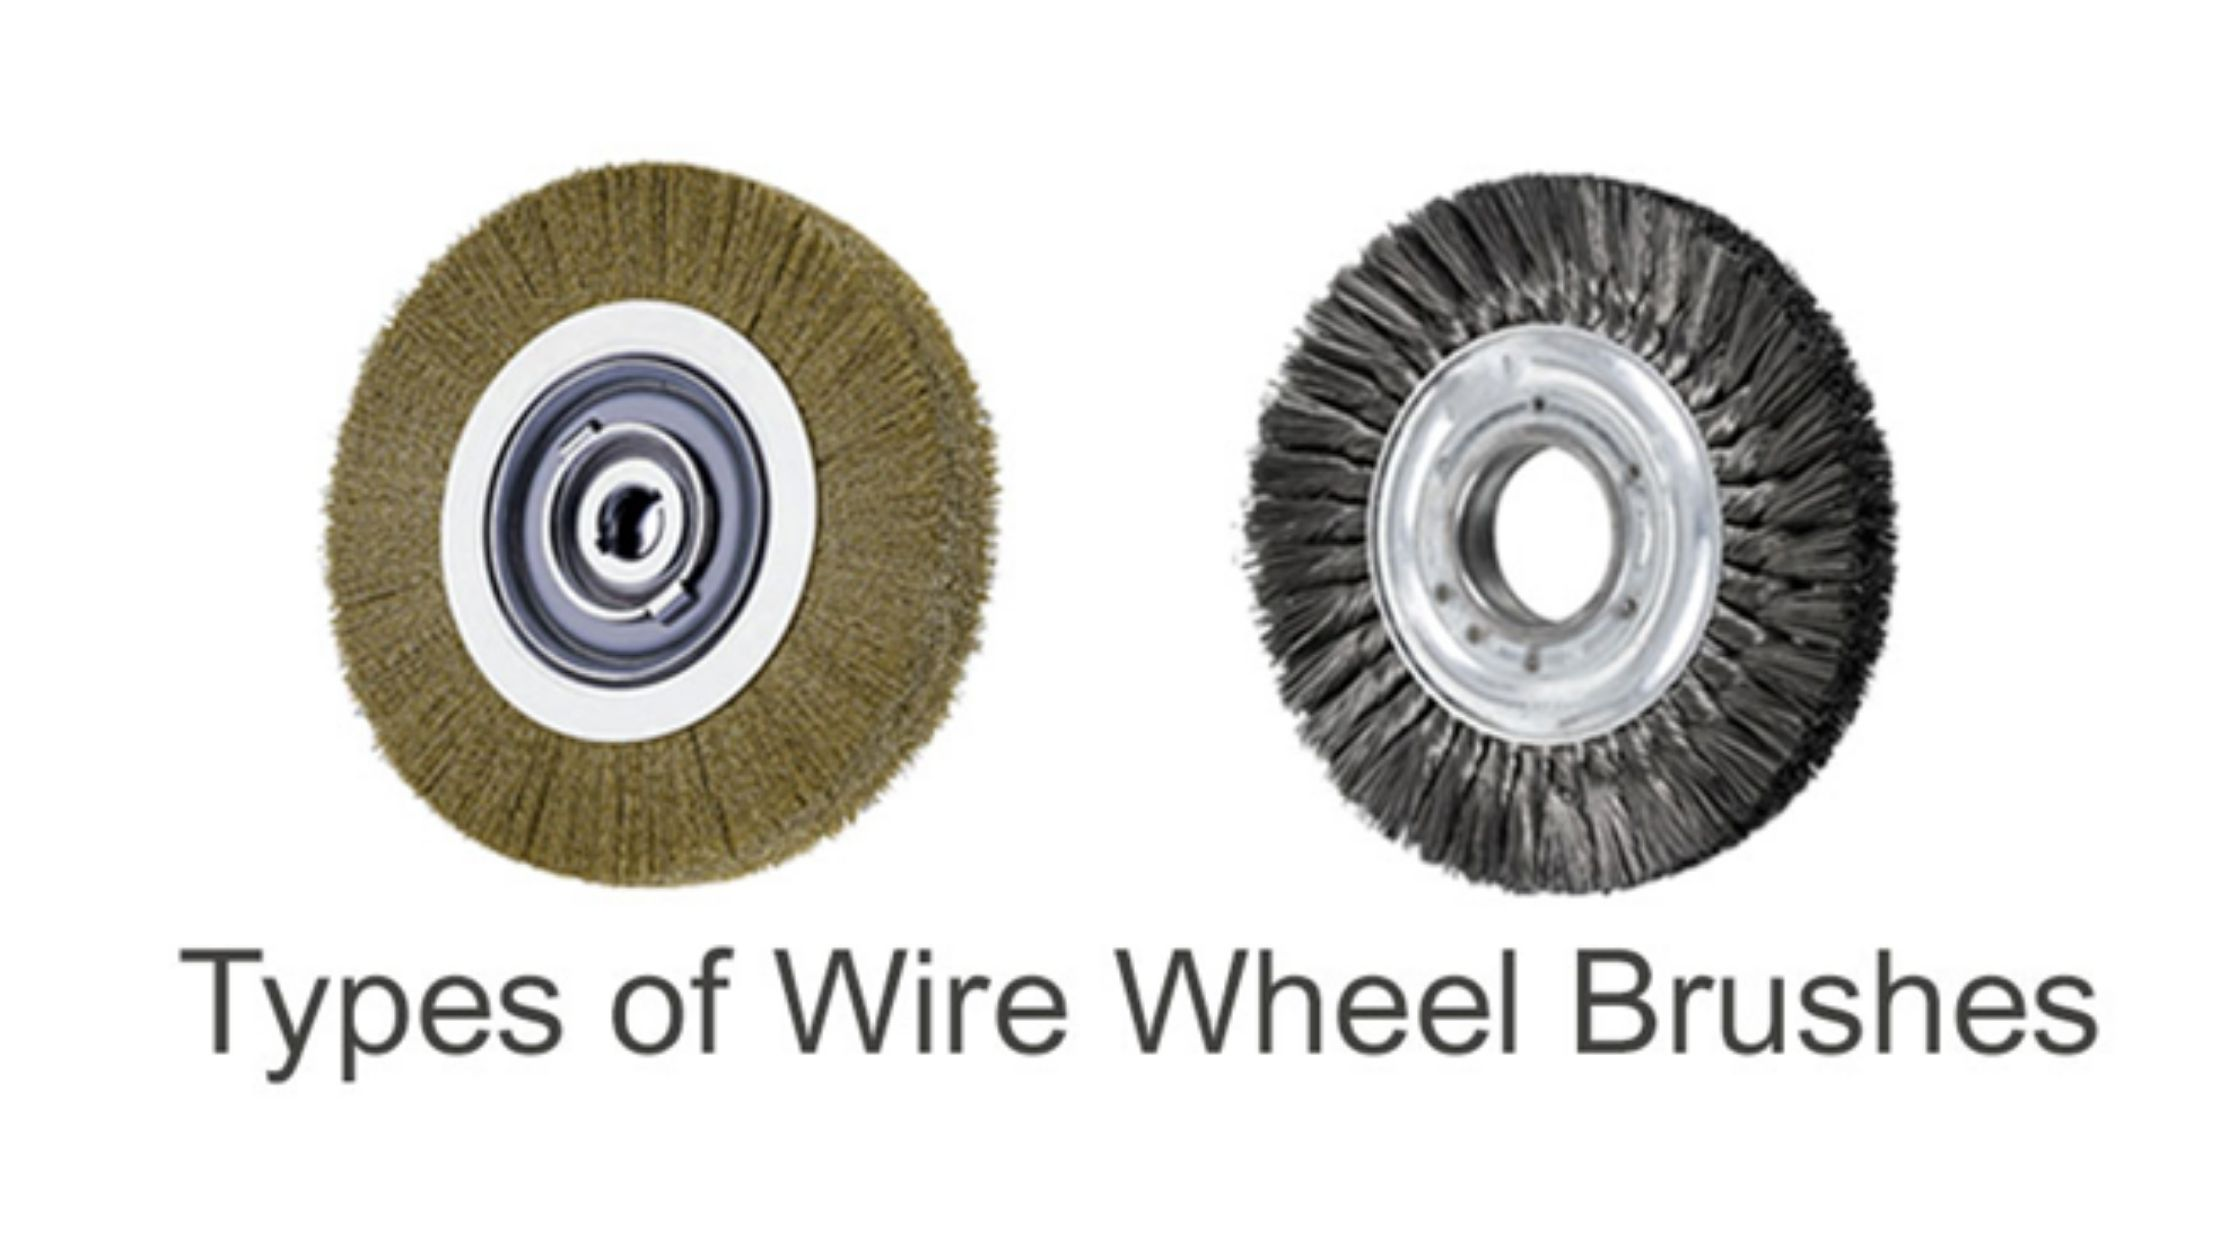 WHAT ARE DIFFERENT TYPES OF WIRE WHEEL BRUSHES